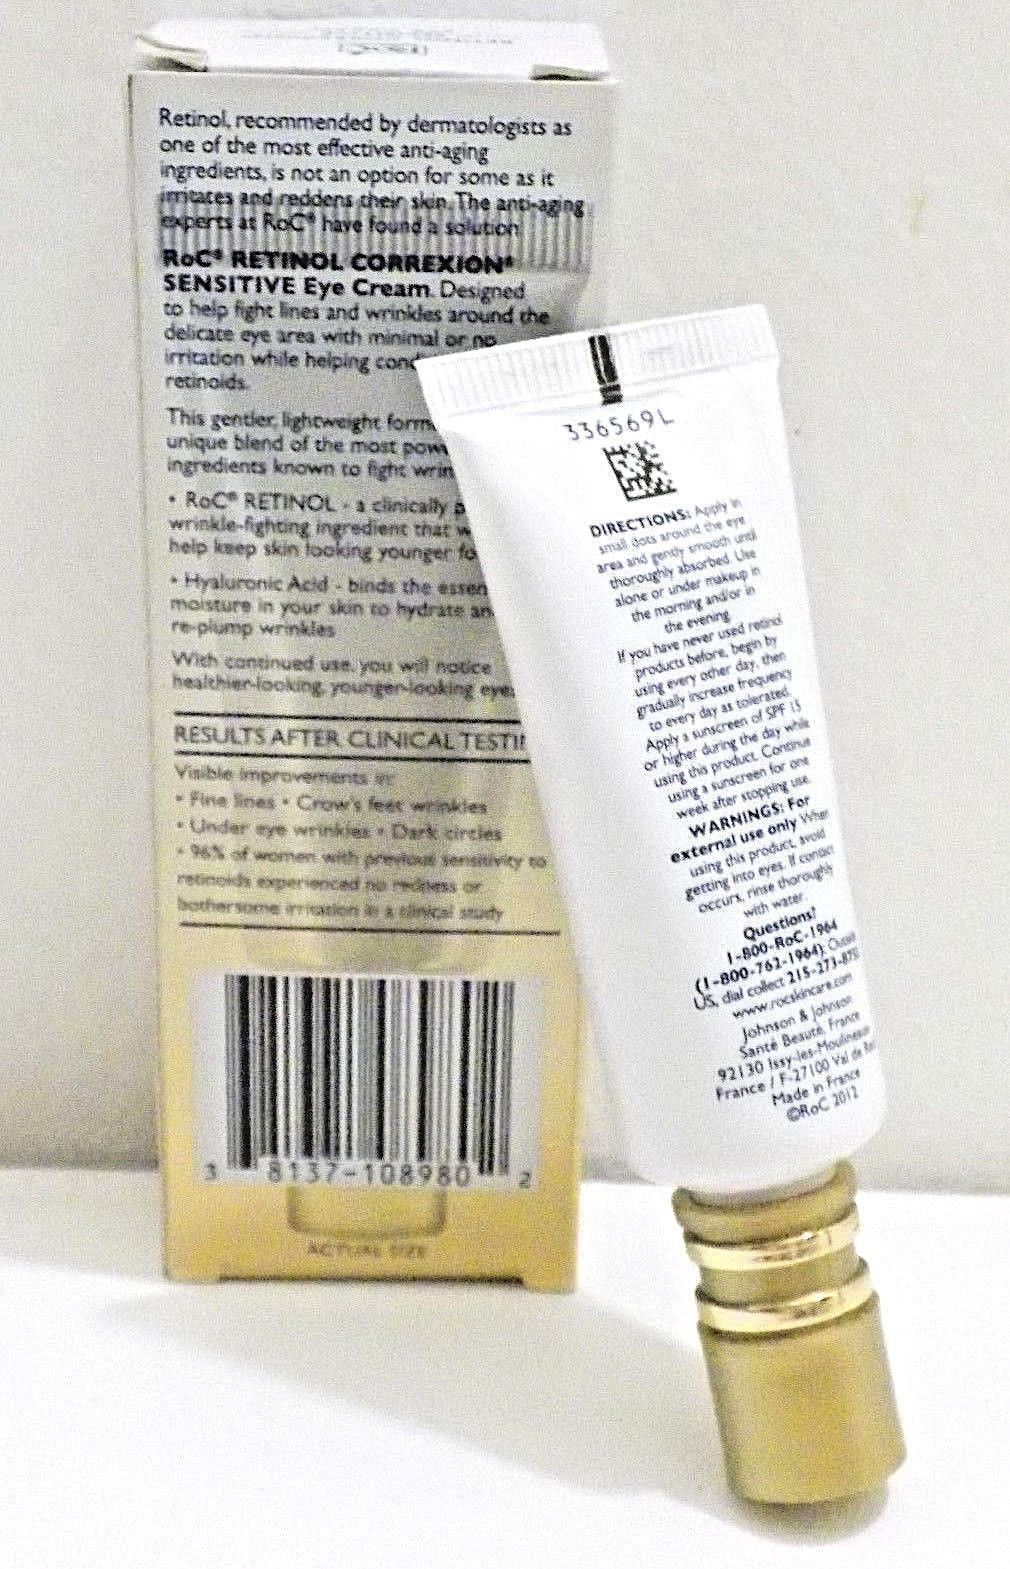 Roc Retinol Correxion Sensitive Skin Eye Cream .05 Oz.